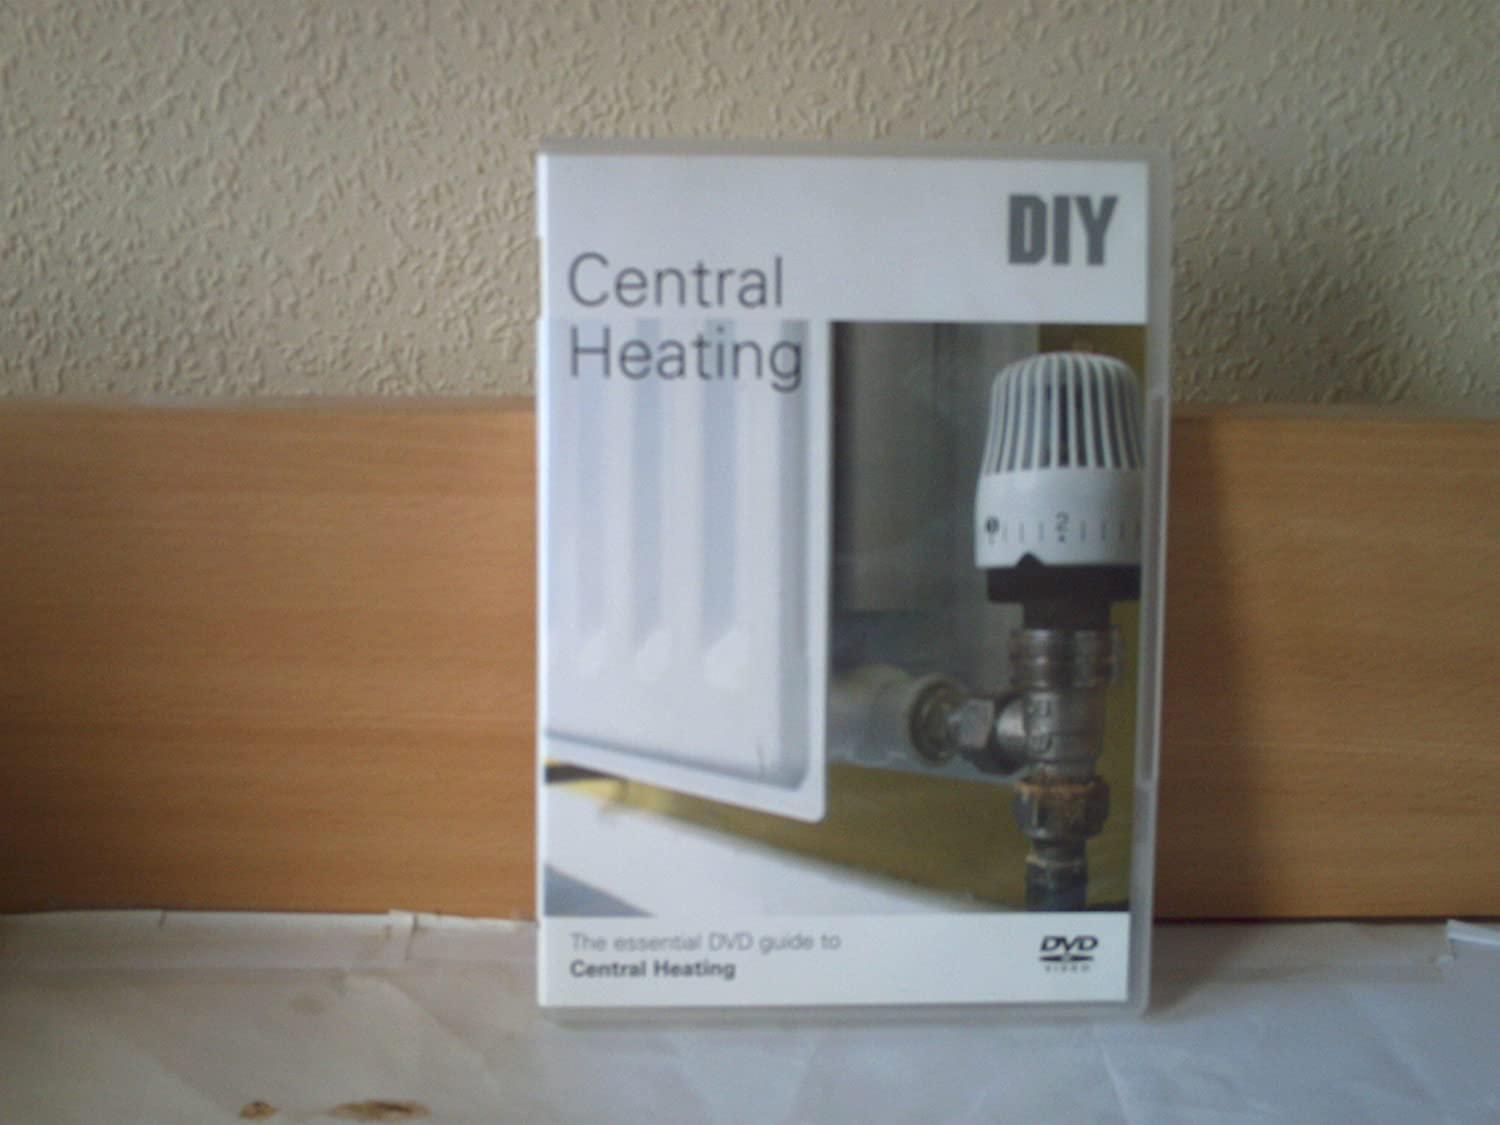 The Essential DVD Guide To - Central Heating: Amazon.co.uk: DVD ...